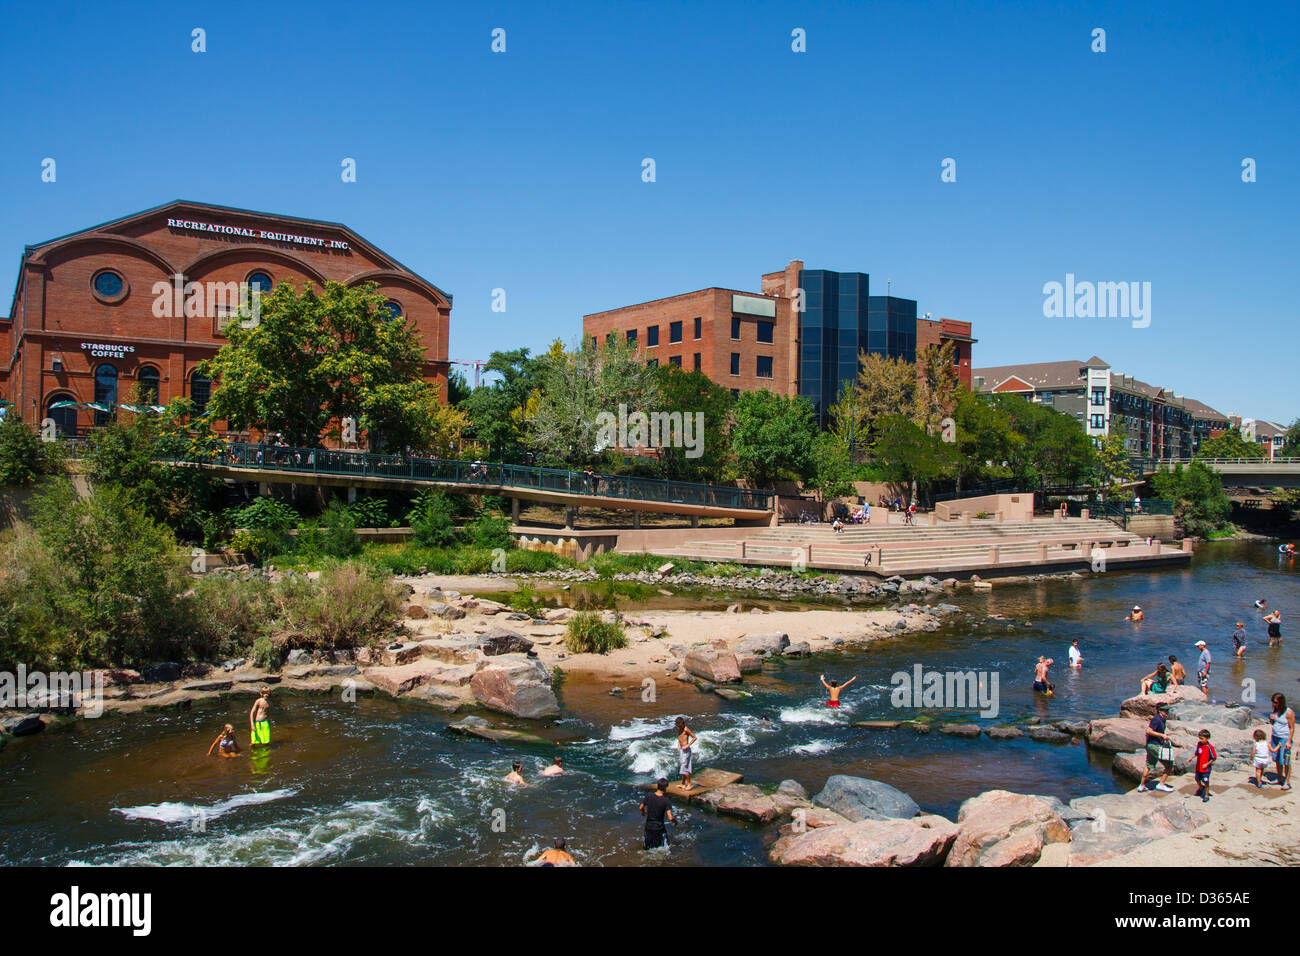 Many people cooling off in the Platte River in Denver near Conluence Park - Stock Image